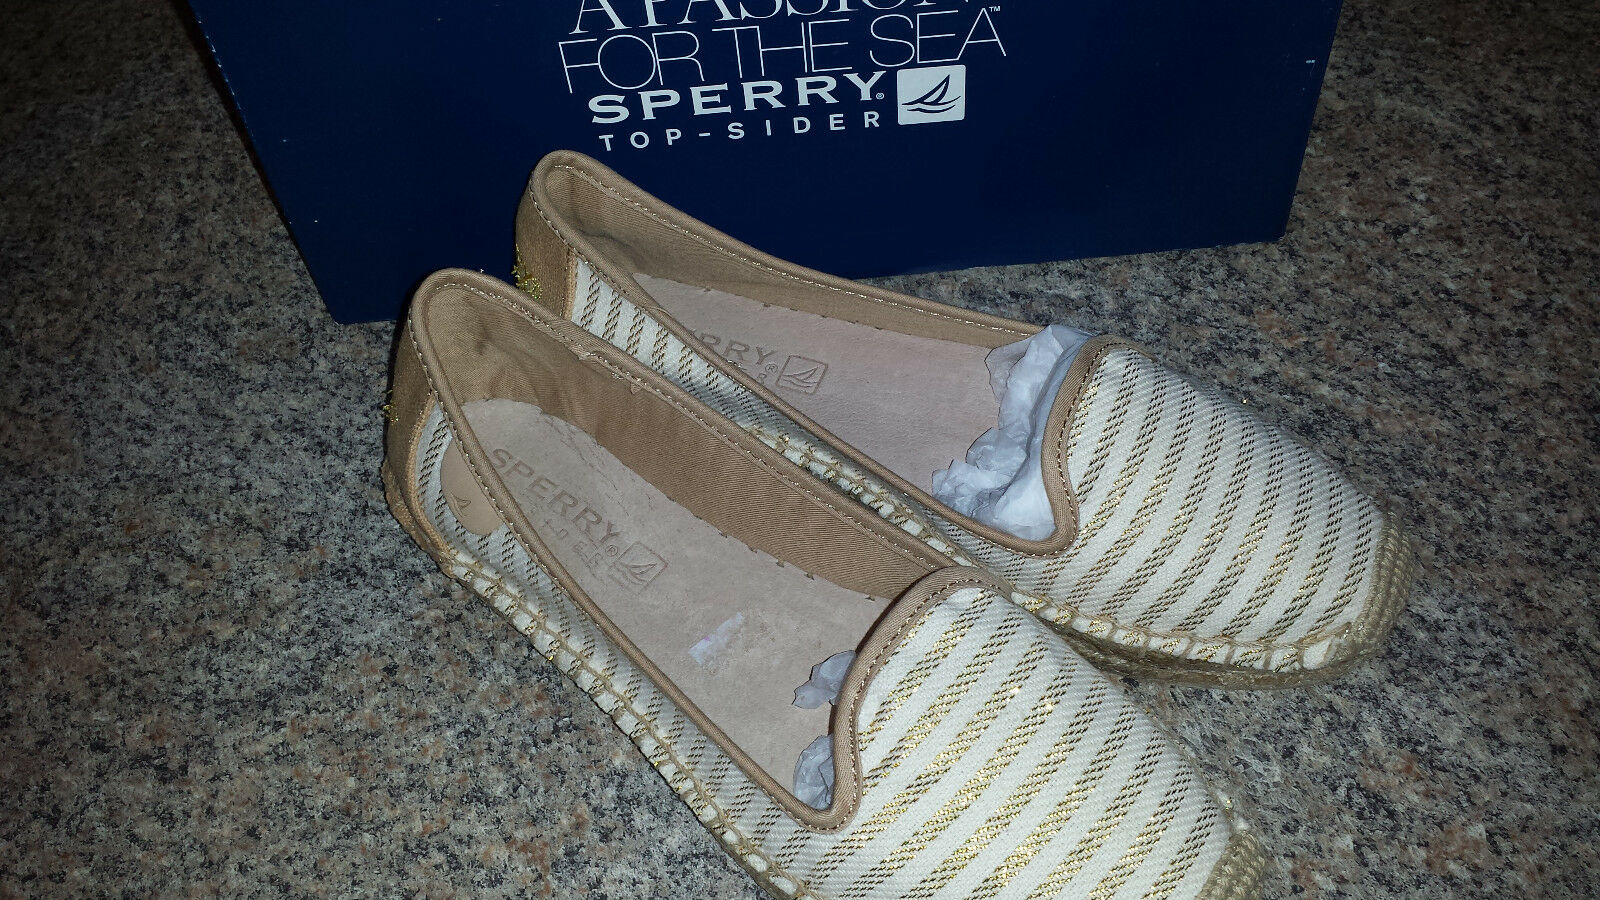 SPERRY TOP-SIDER Womens COCO Sand gold Slip on Loafer Espadrille 5 M NEW